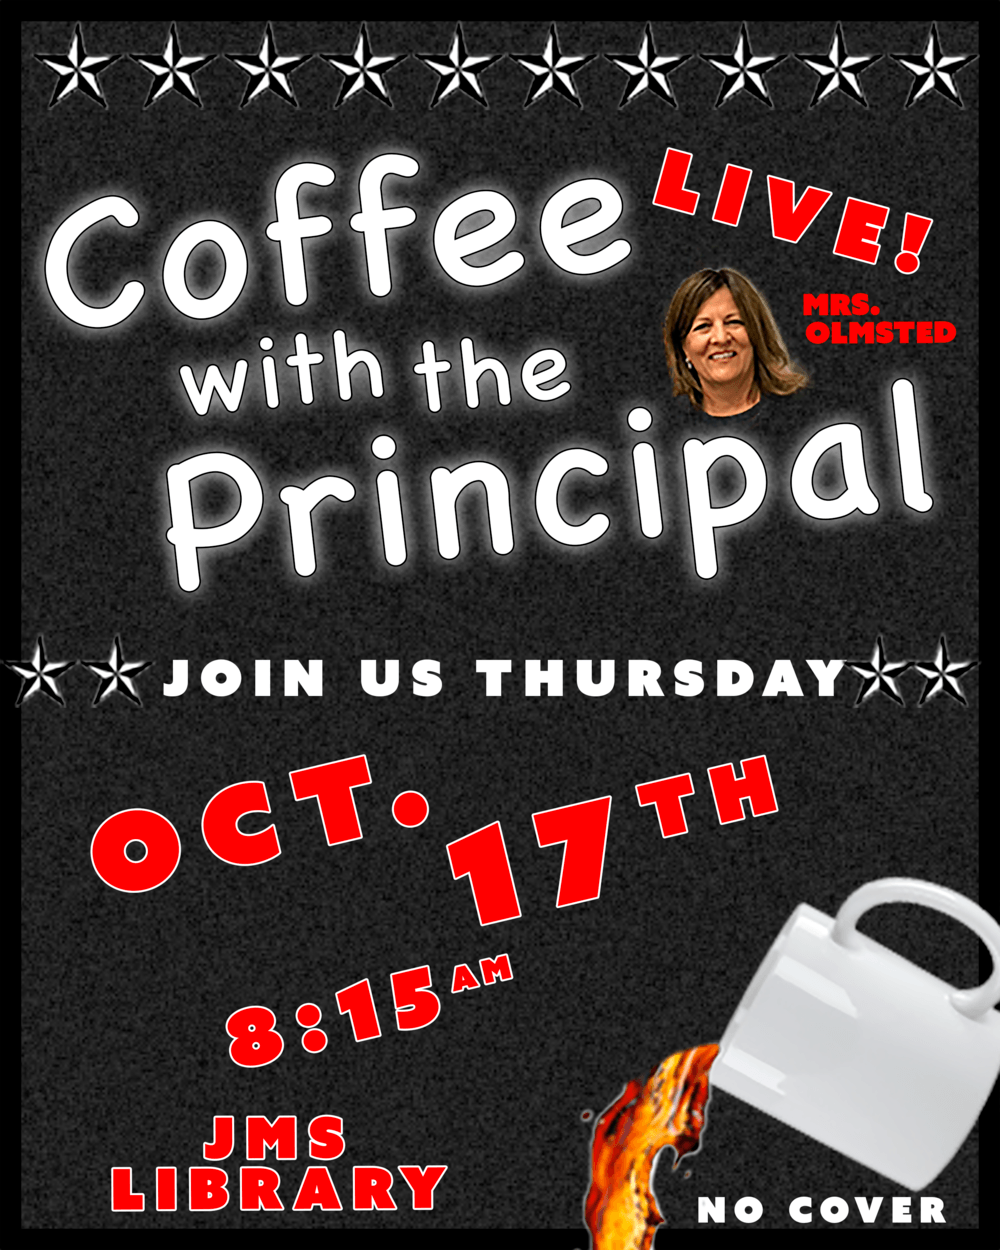 Coffee with the Principal - October 17th at 8 15 am in the library